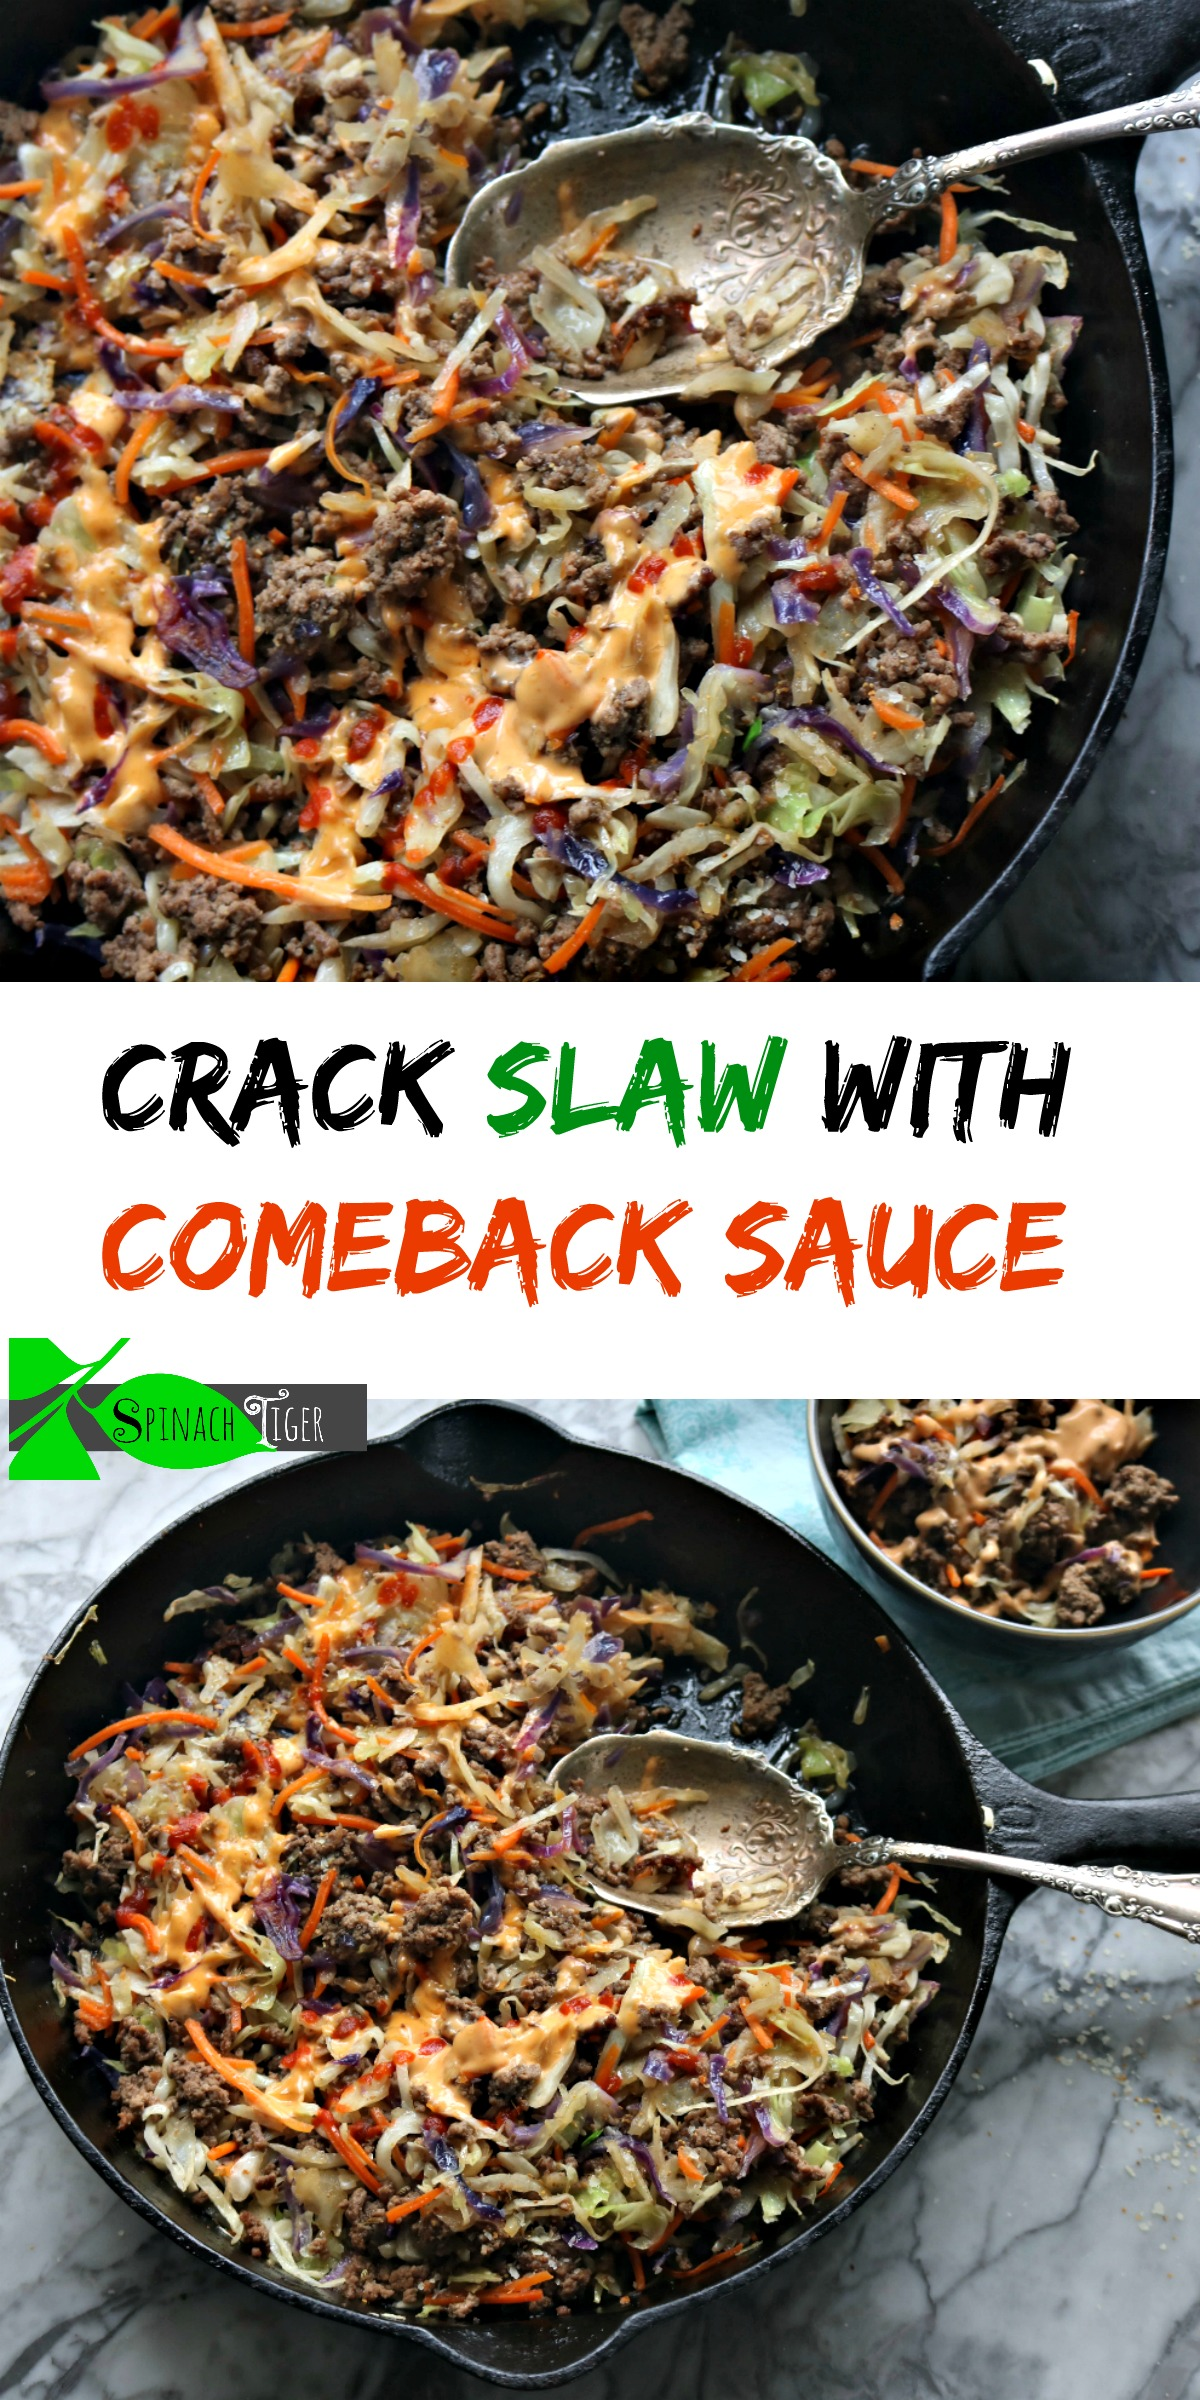 Crack slaw with come back sauce. Keto friendly, low carb, made with ground beef and cole slaw bag. #easydinner. #ketodinner #crackslaw #spinachtiger via @angelaroberts